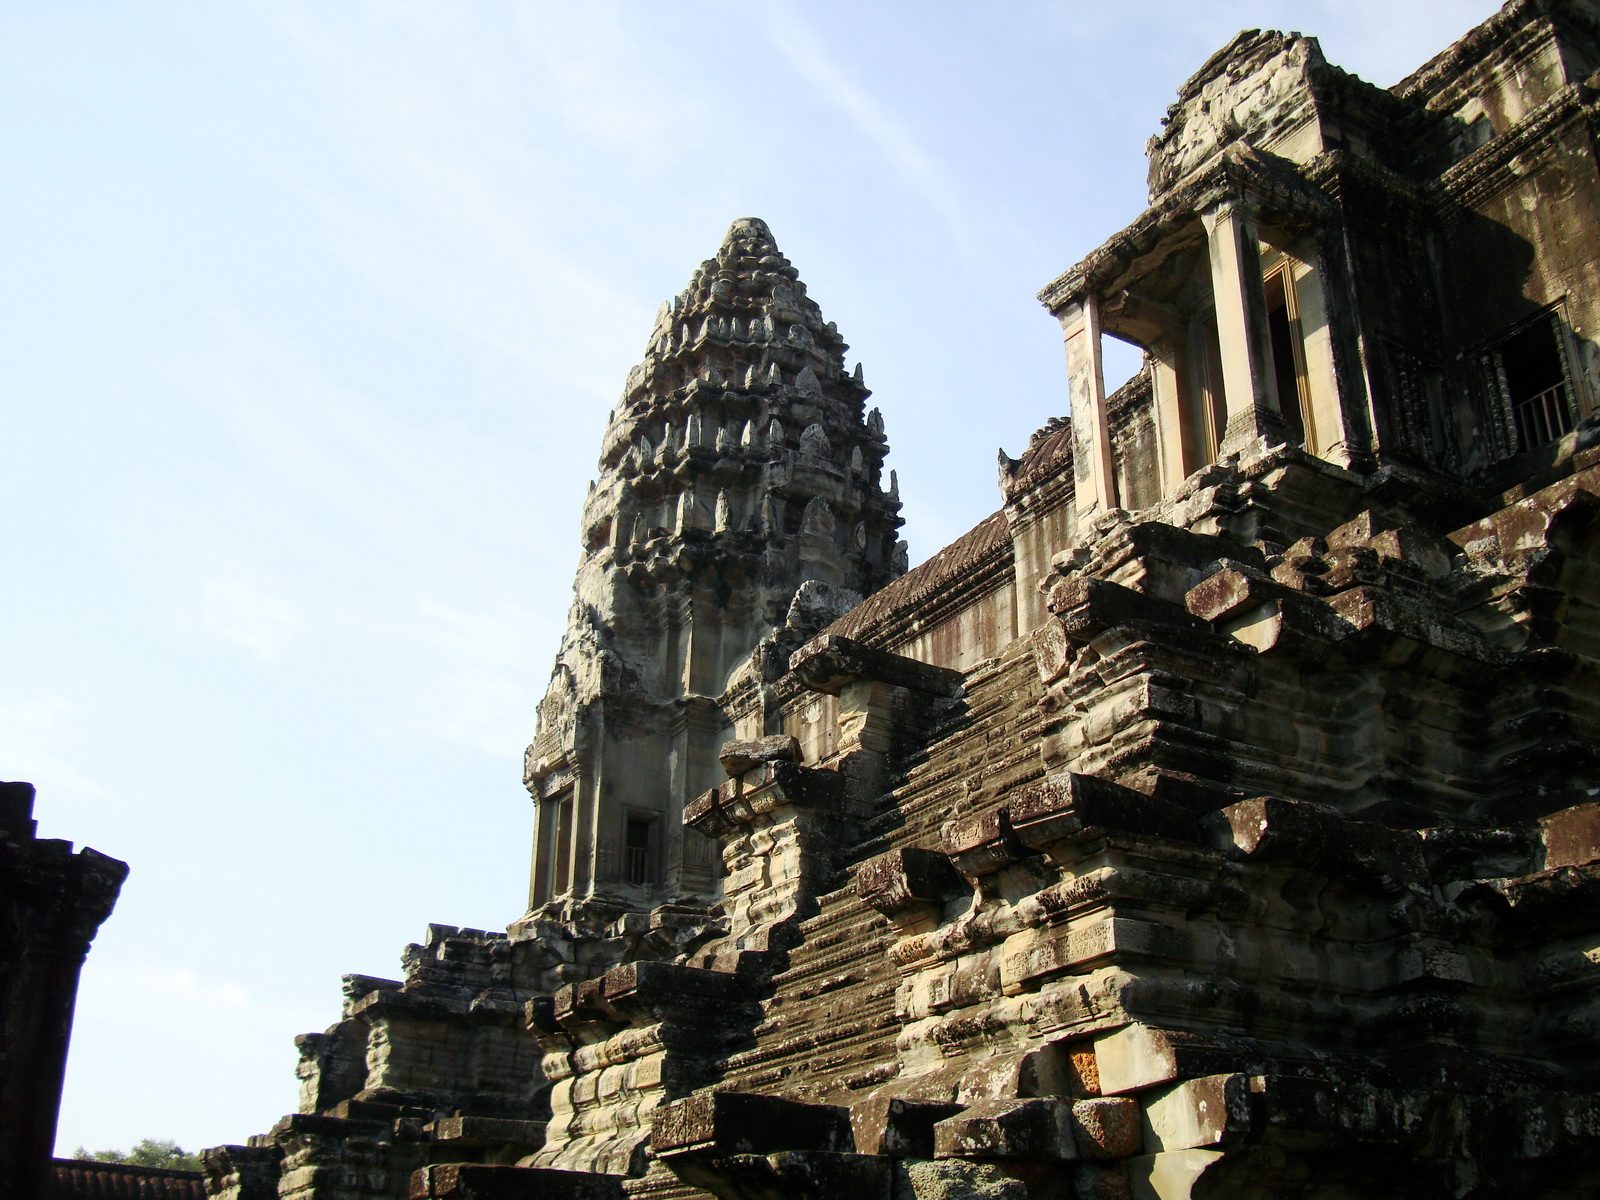 Angkor Wat Khmer architecture inner sanctuary towers 07